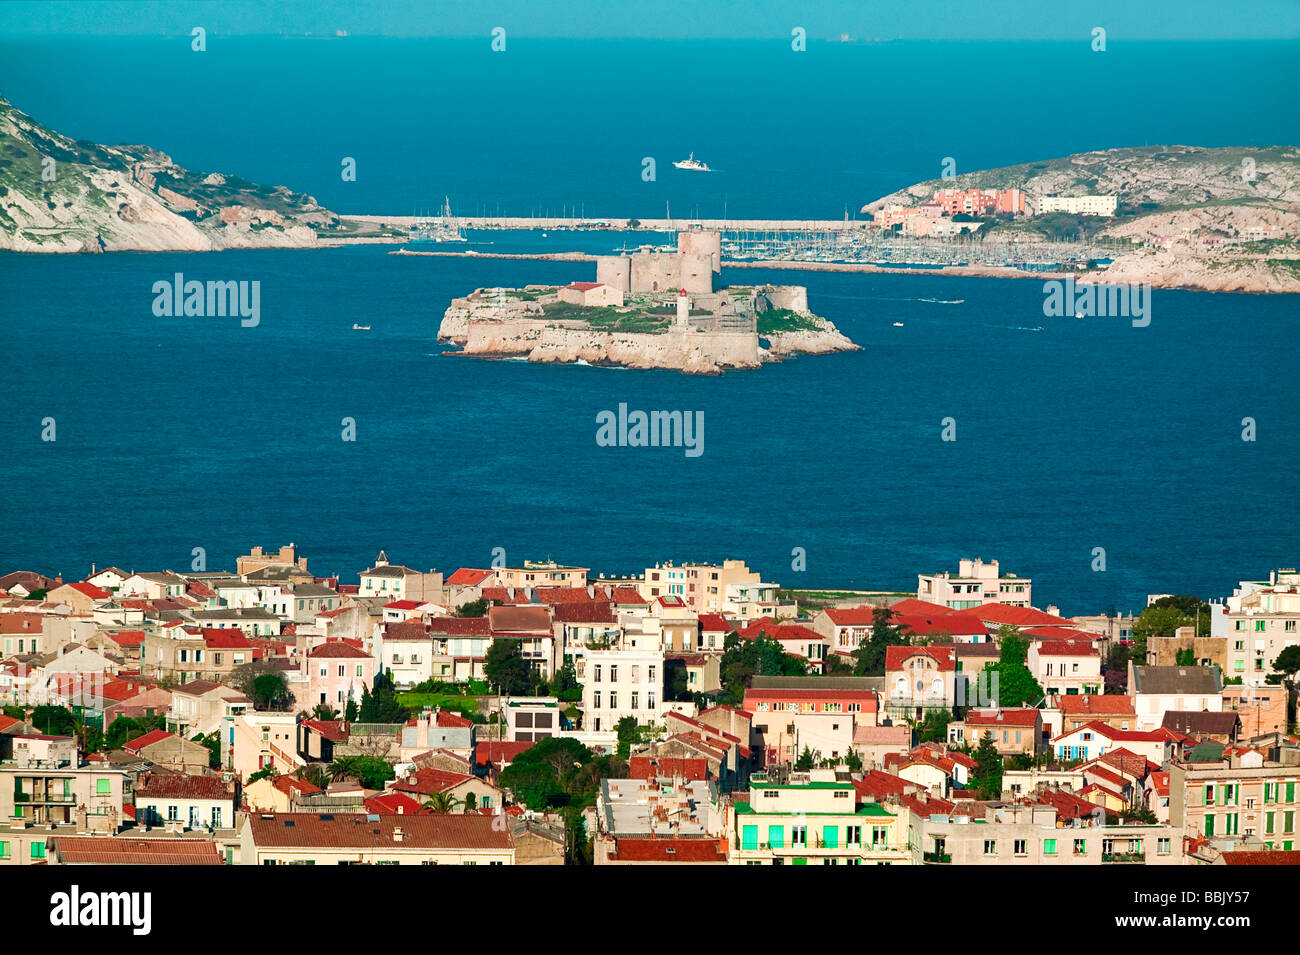 FRIOUL ISLANDS AND IF CASTLE IN MARSEILLE - PROVENCE - FRANCE - Stock Image